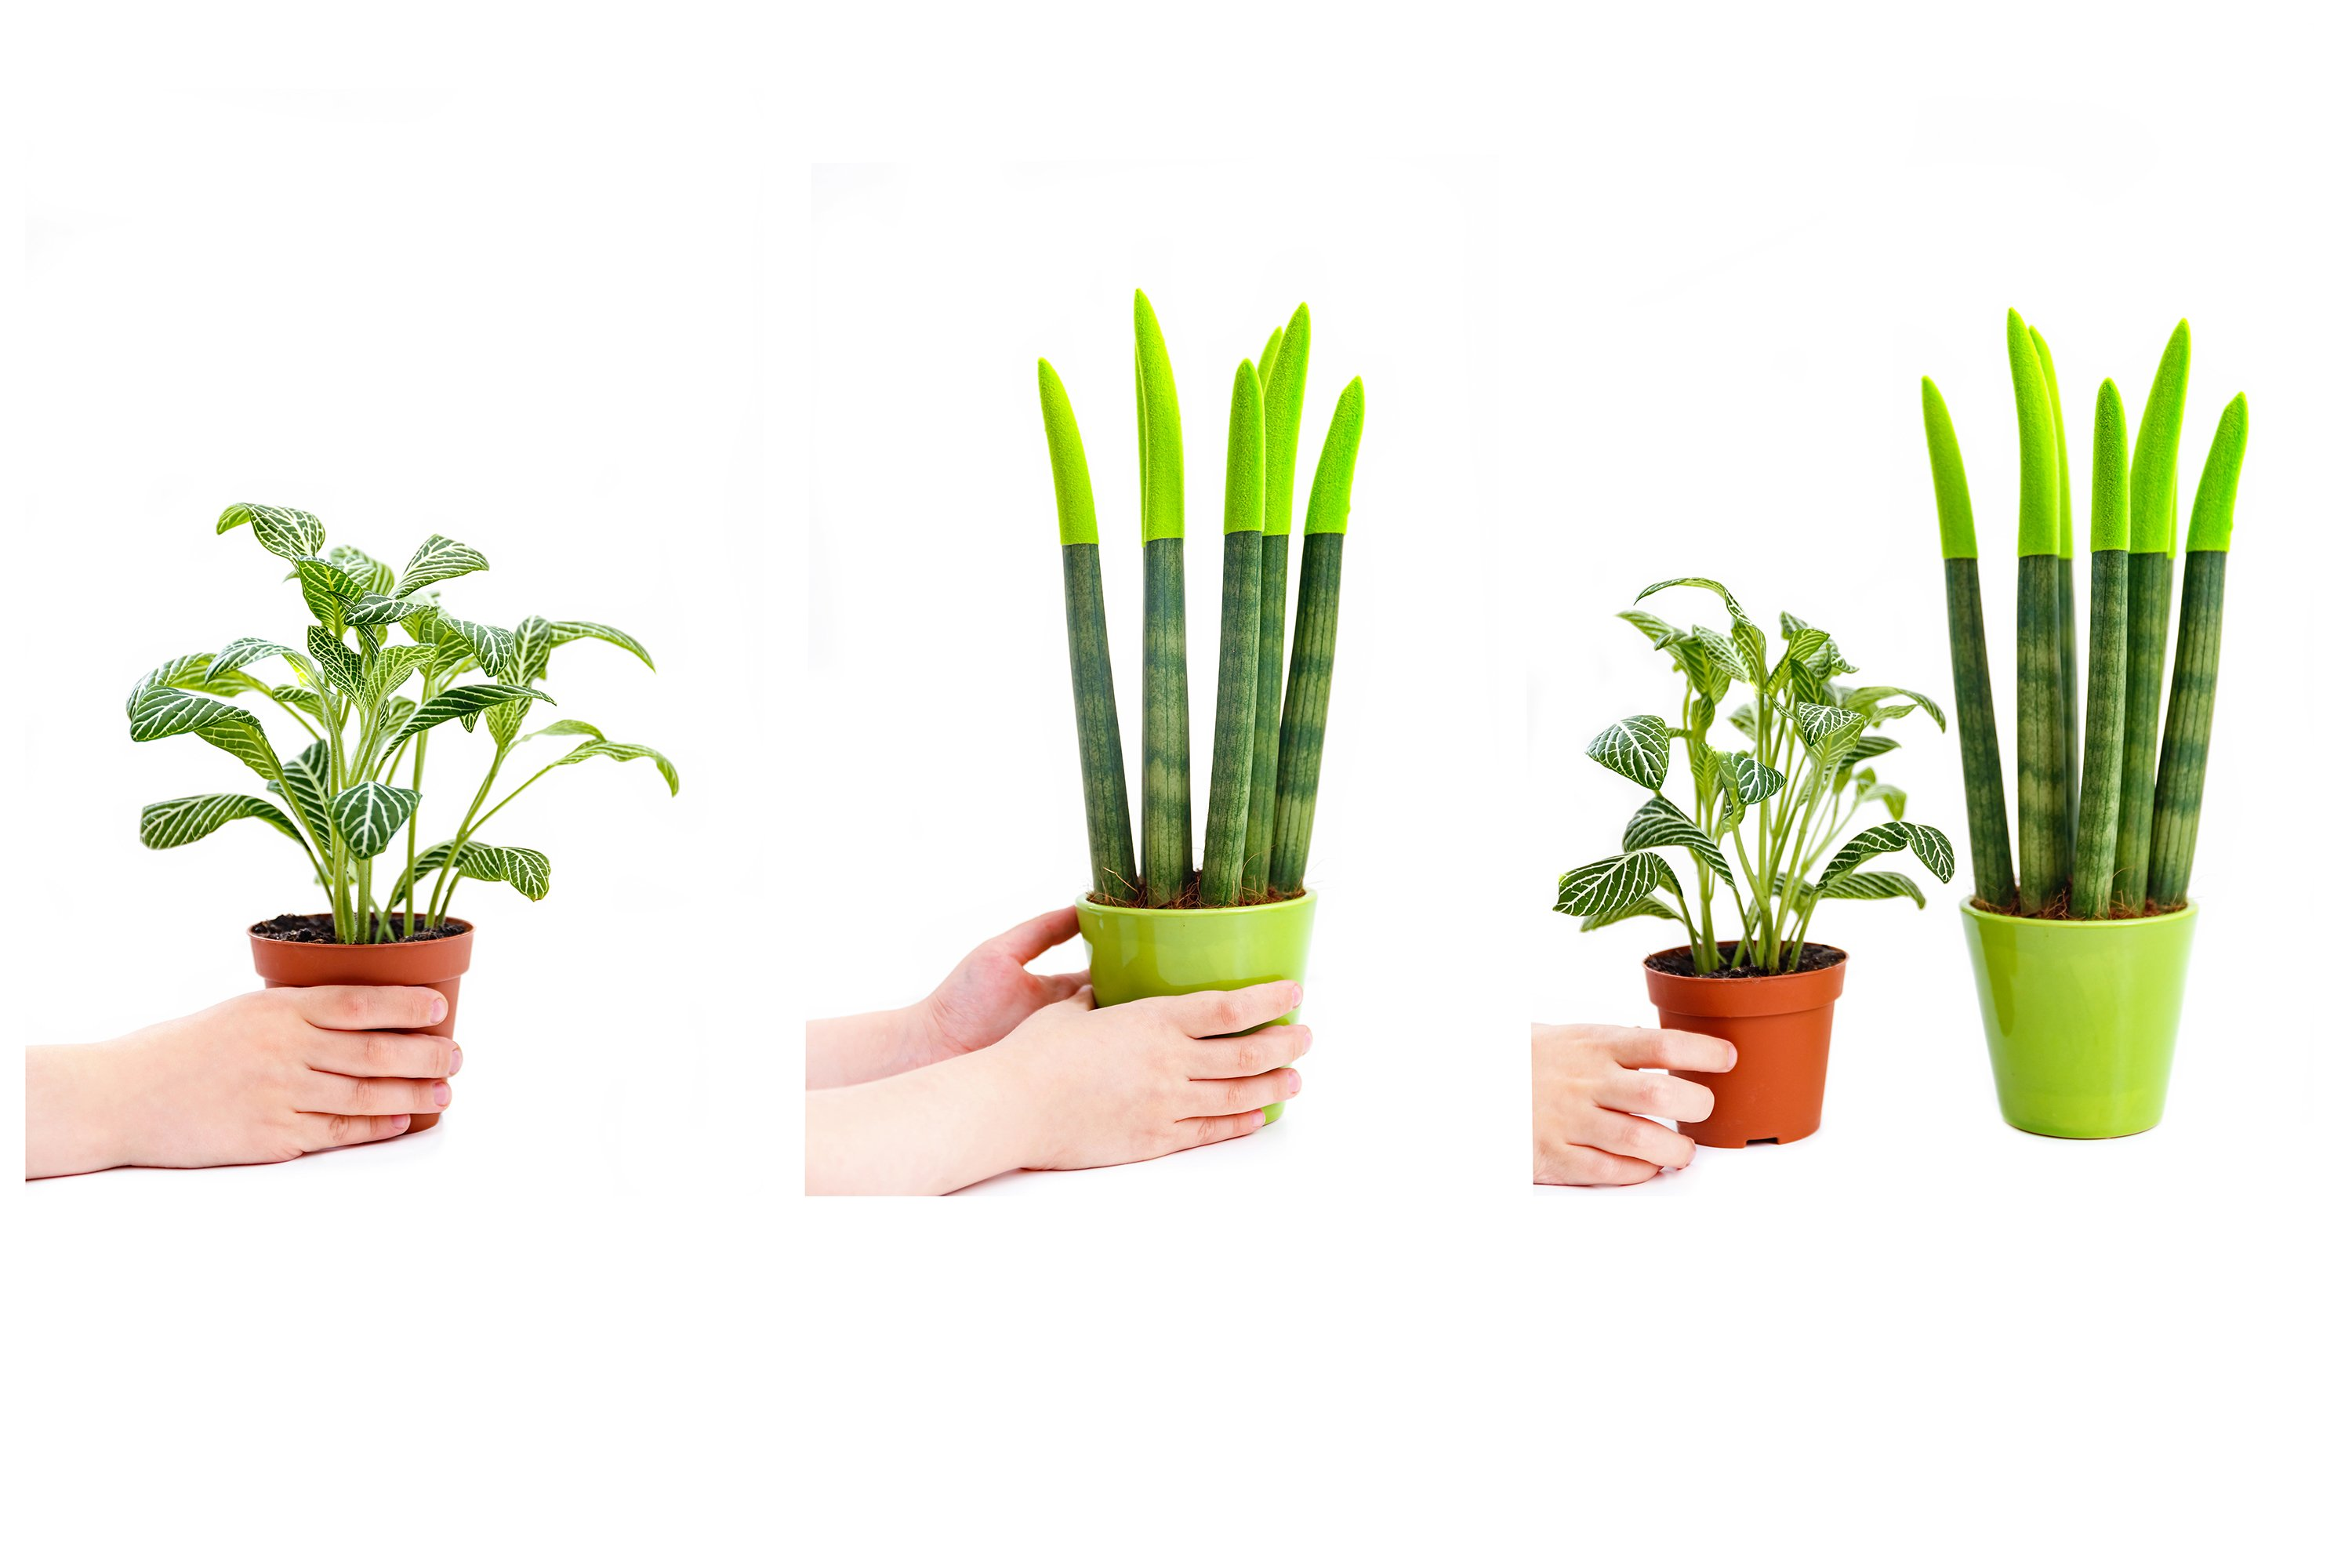 3 images with a boy holding a plant on white background example image 1